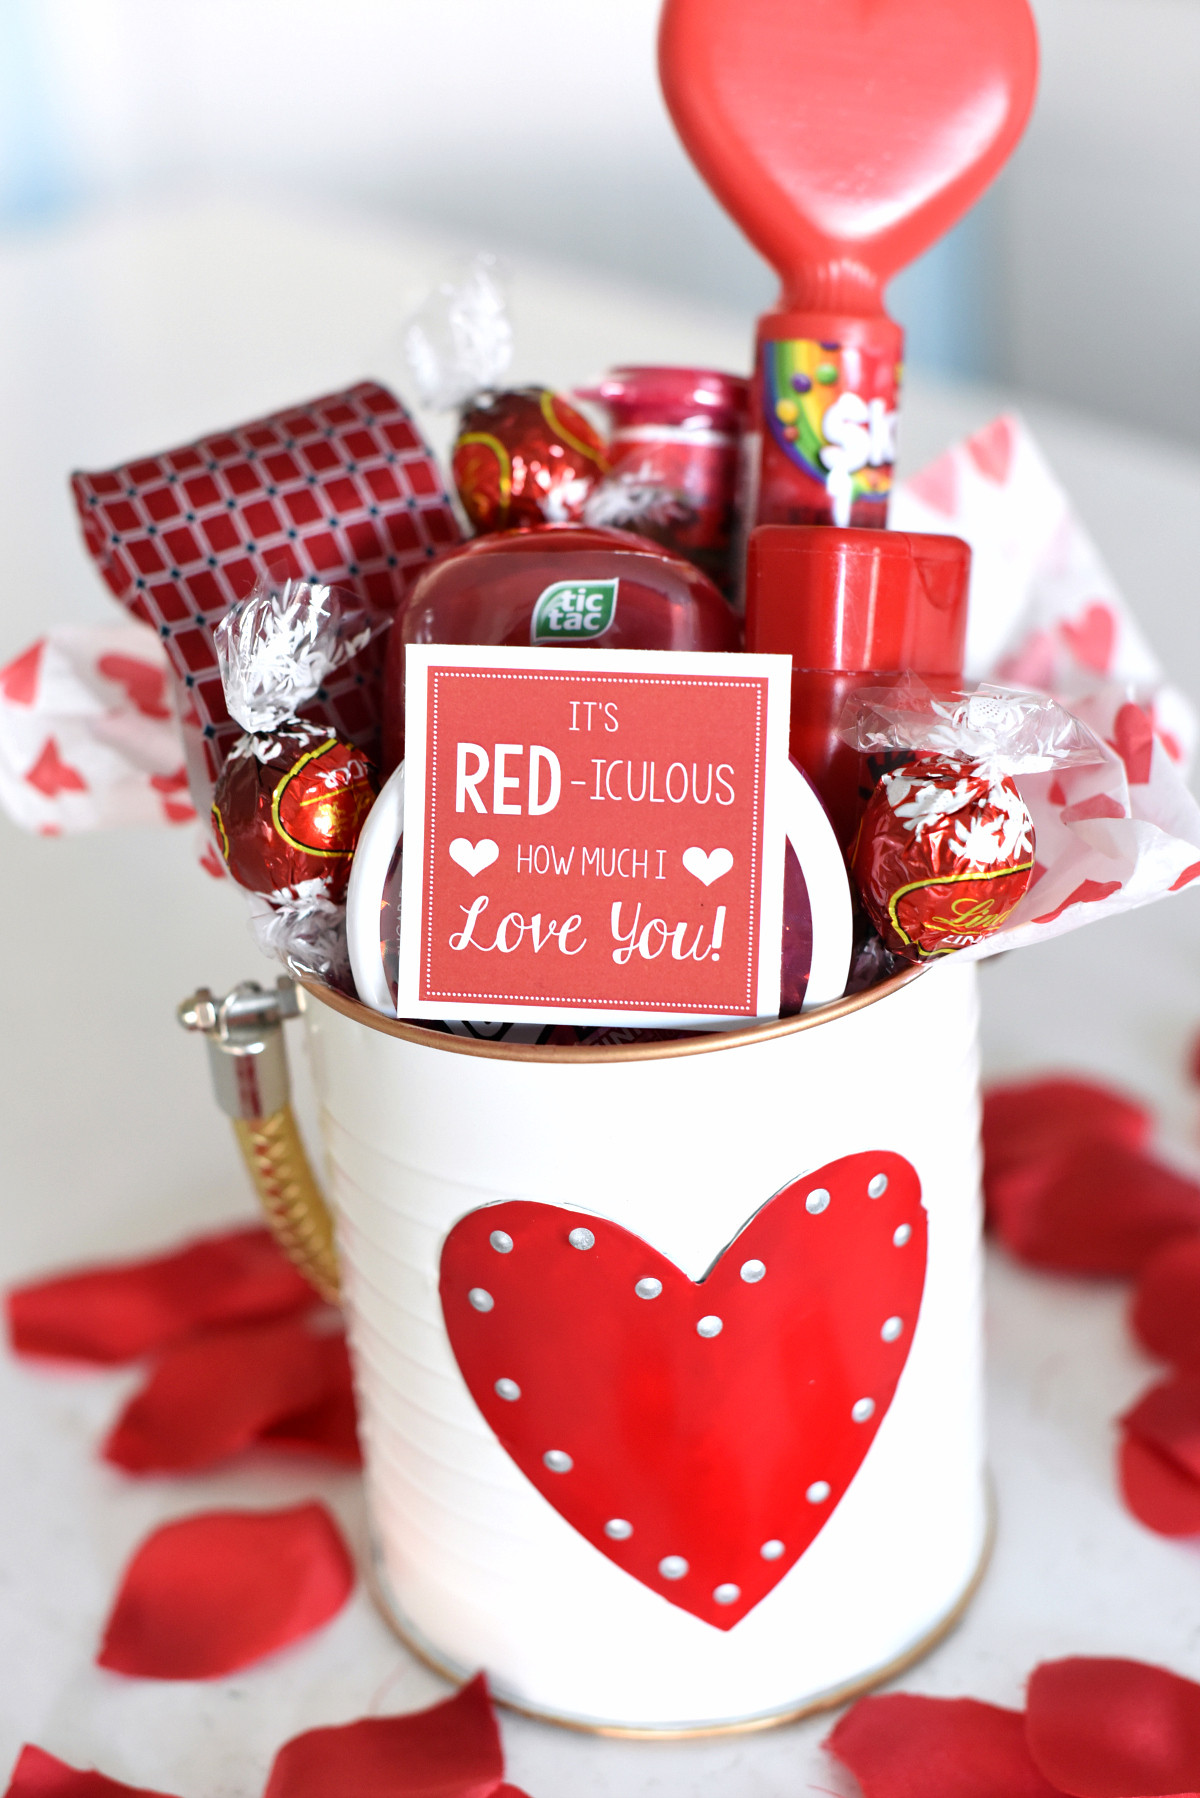 Best ideas about Valentine Gift Ideas For Husband . Save or Pin Cute Valentine s Day Gift Idea RED iculous Basket Now.